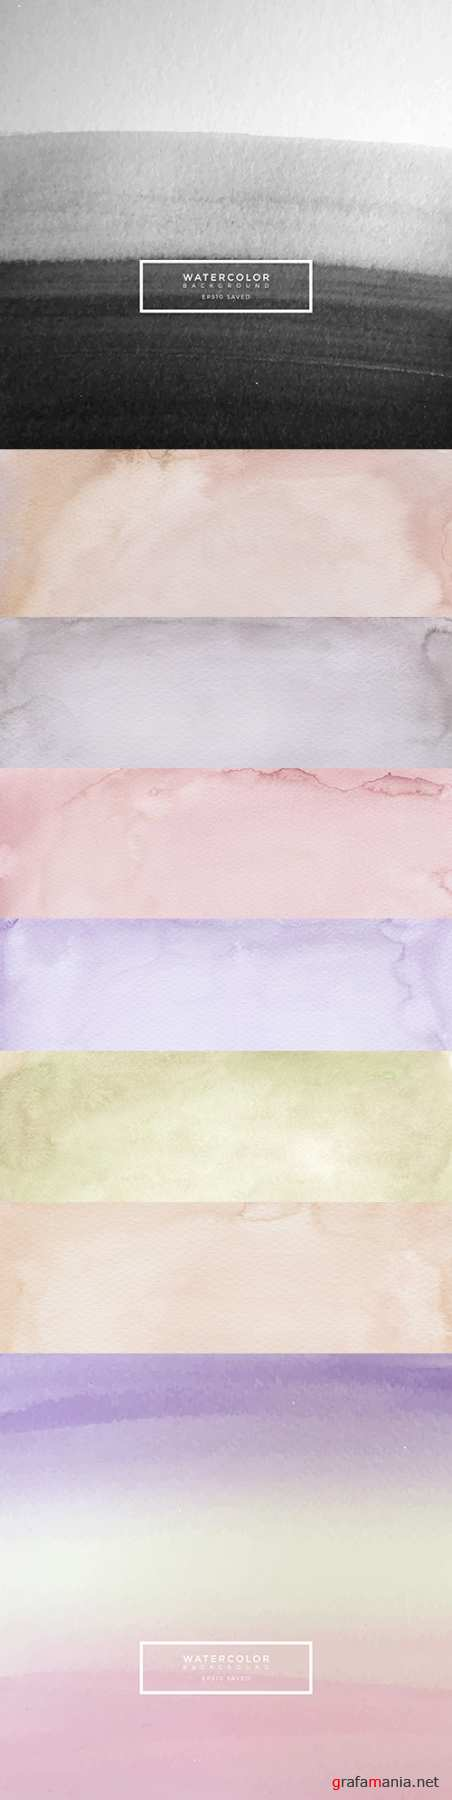 Watercolor texture background design soft colored